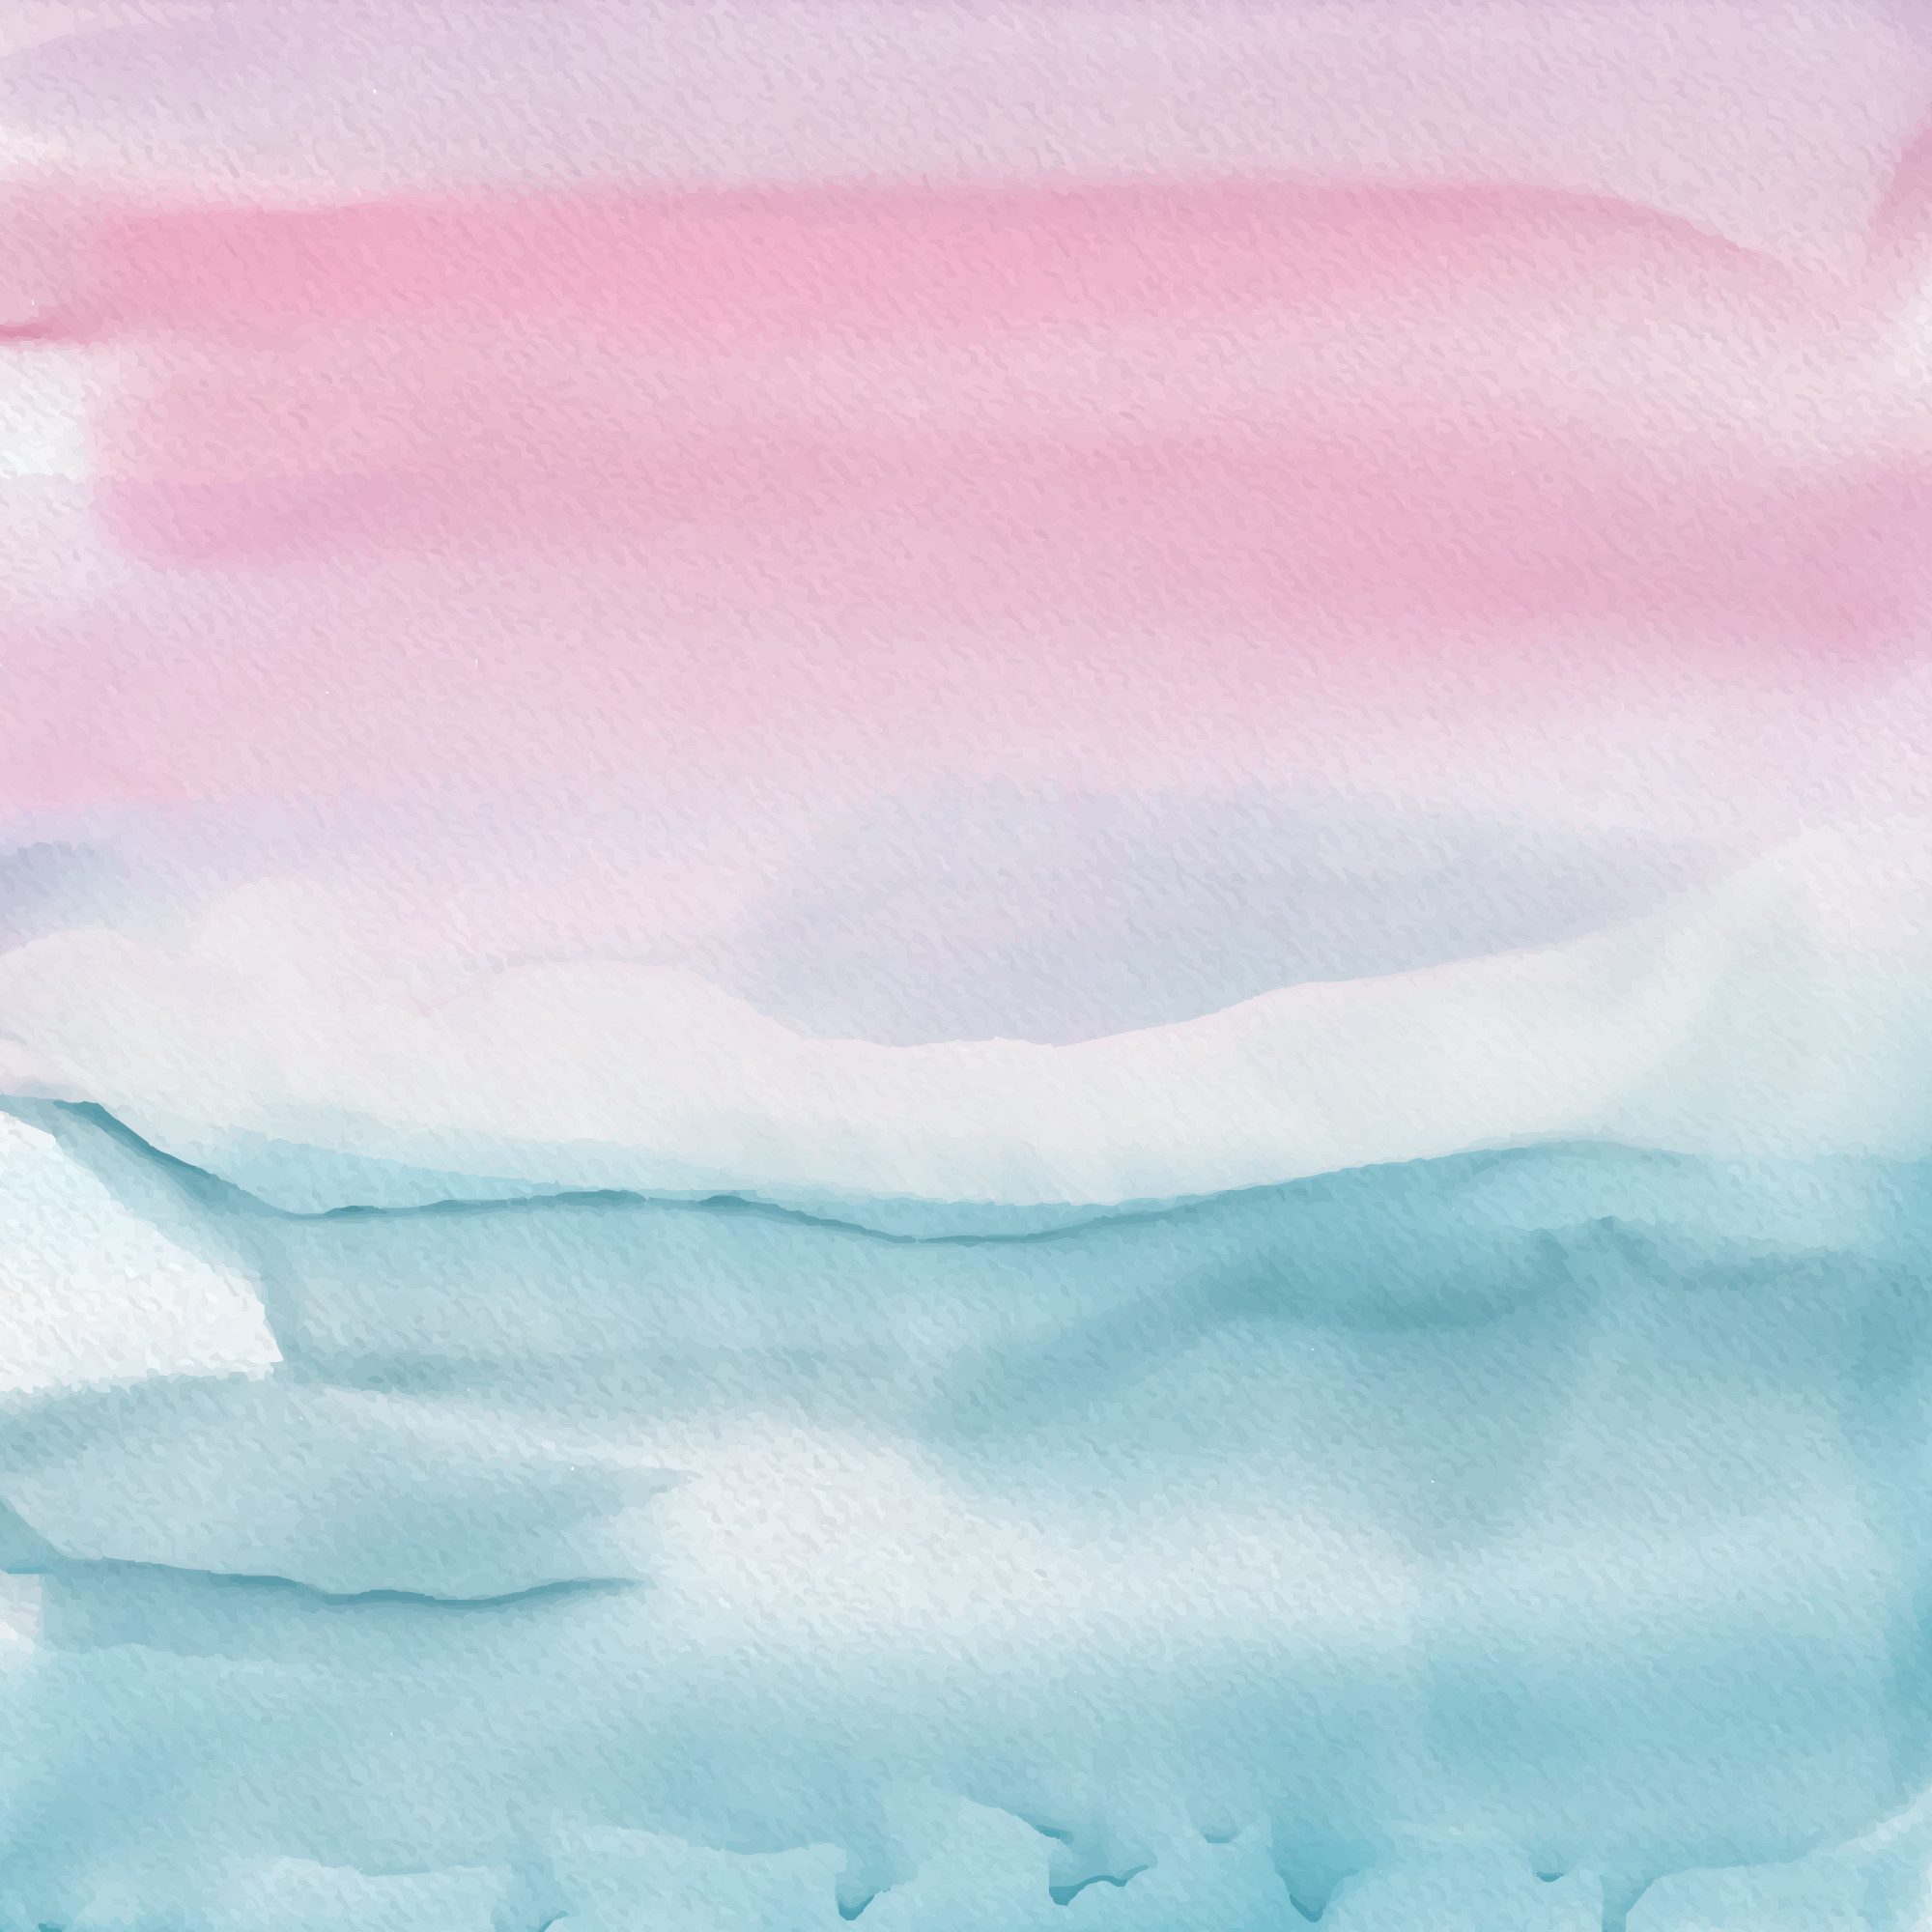 Abstract background with a detailed watercolour texture